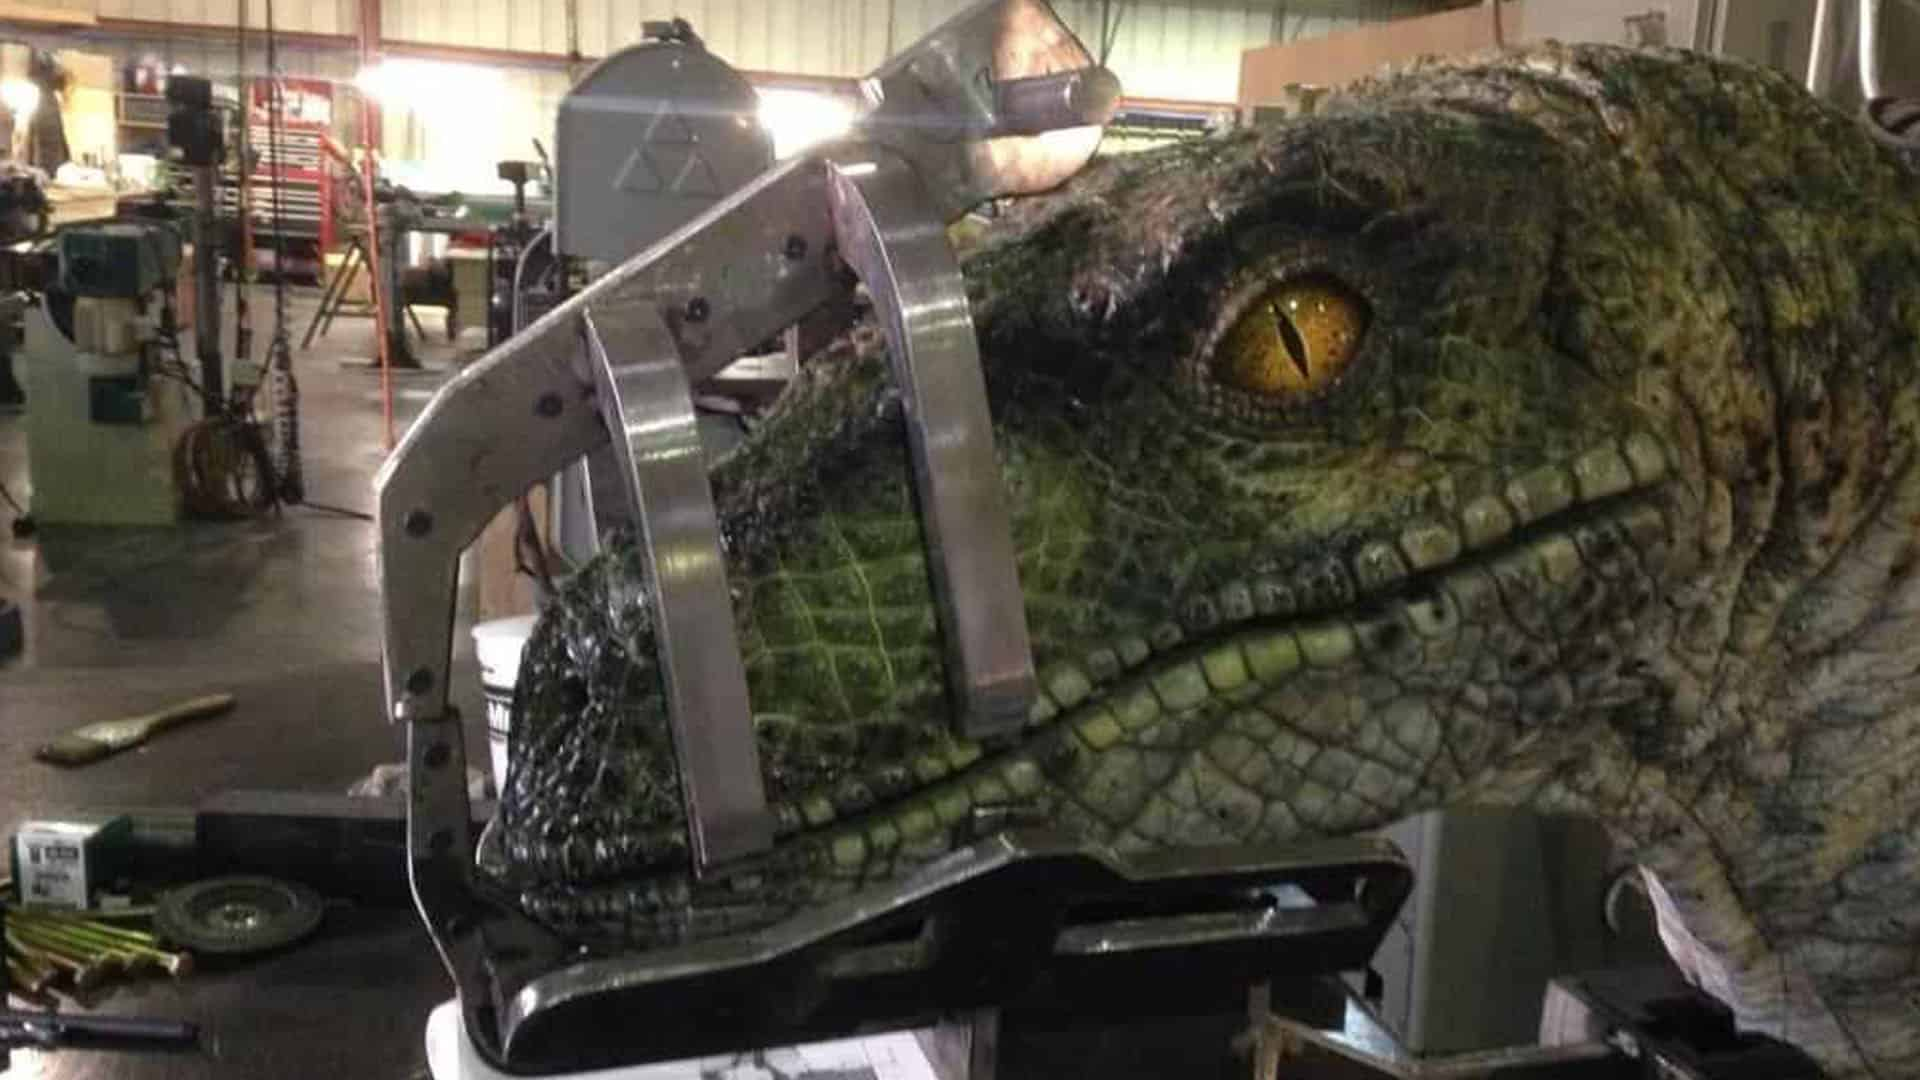 go inside the effects of jurassic world in new